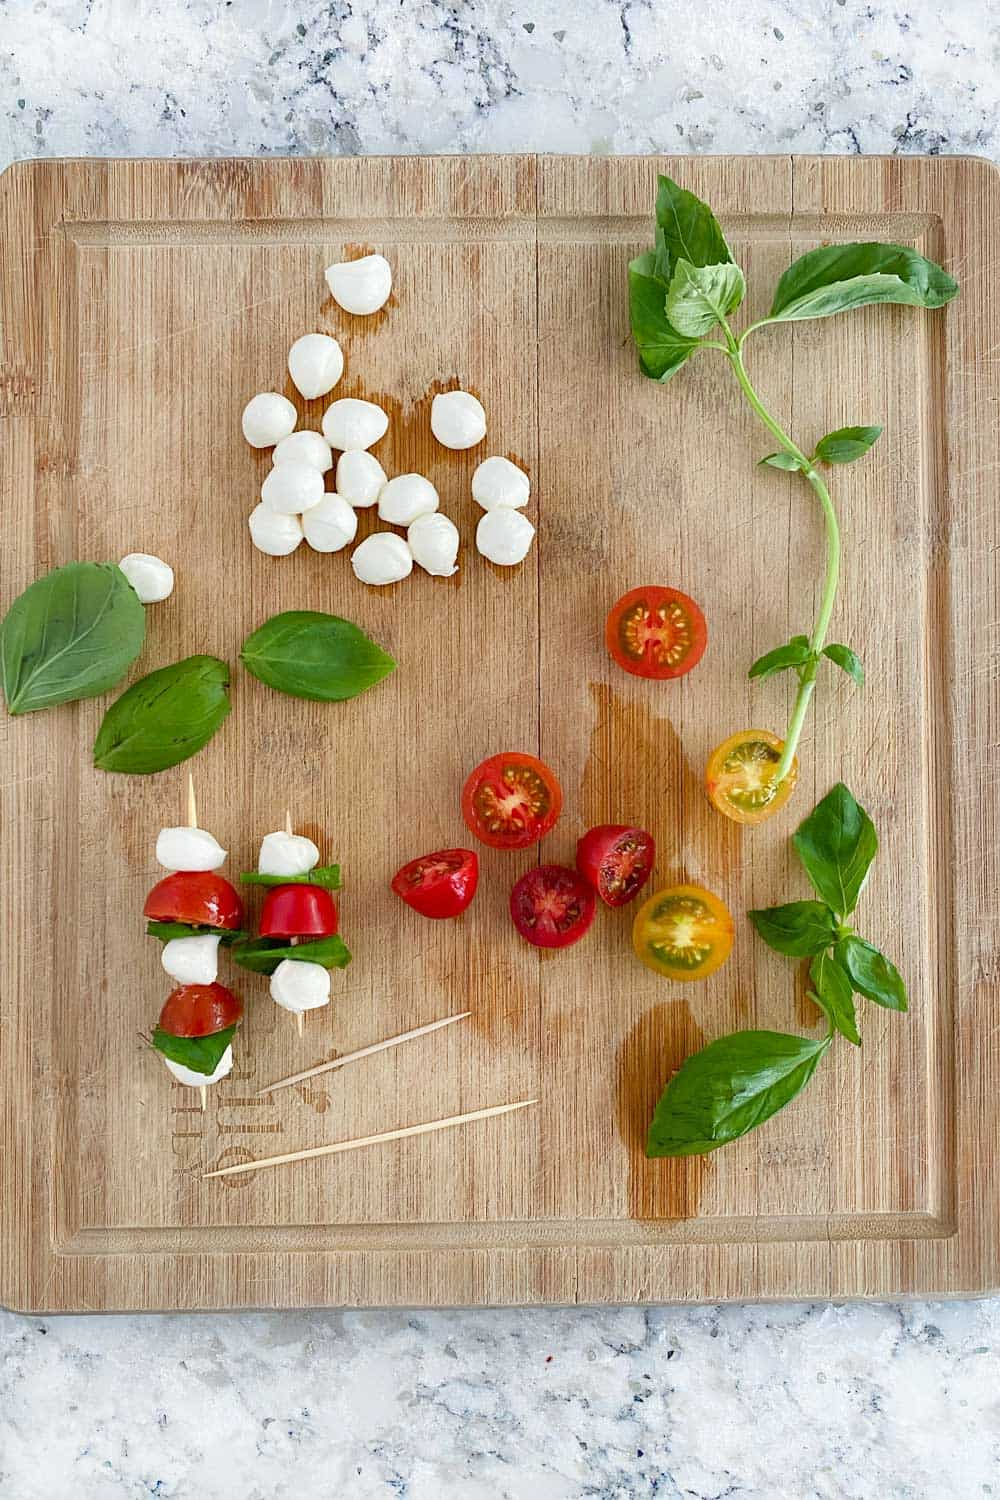 wooden cutting board with ingredients for making mini caprese skewers: a dozen mini mozzarella balls, a handful of basil leaves, a few halved cherry tomatoes and a few toothpick skewers